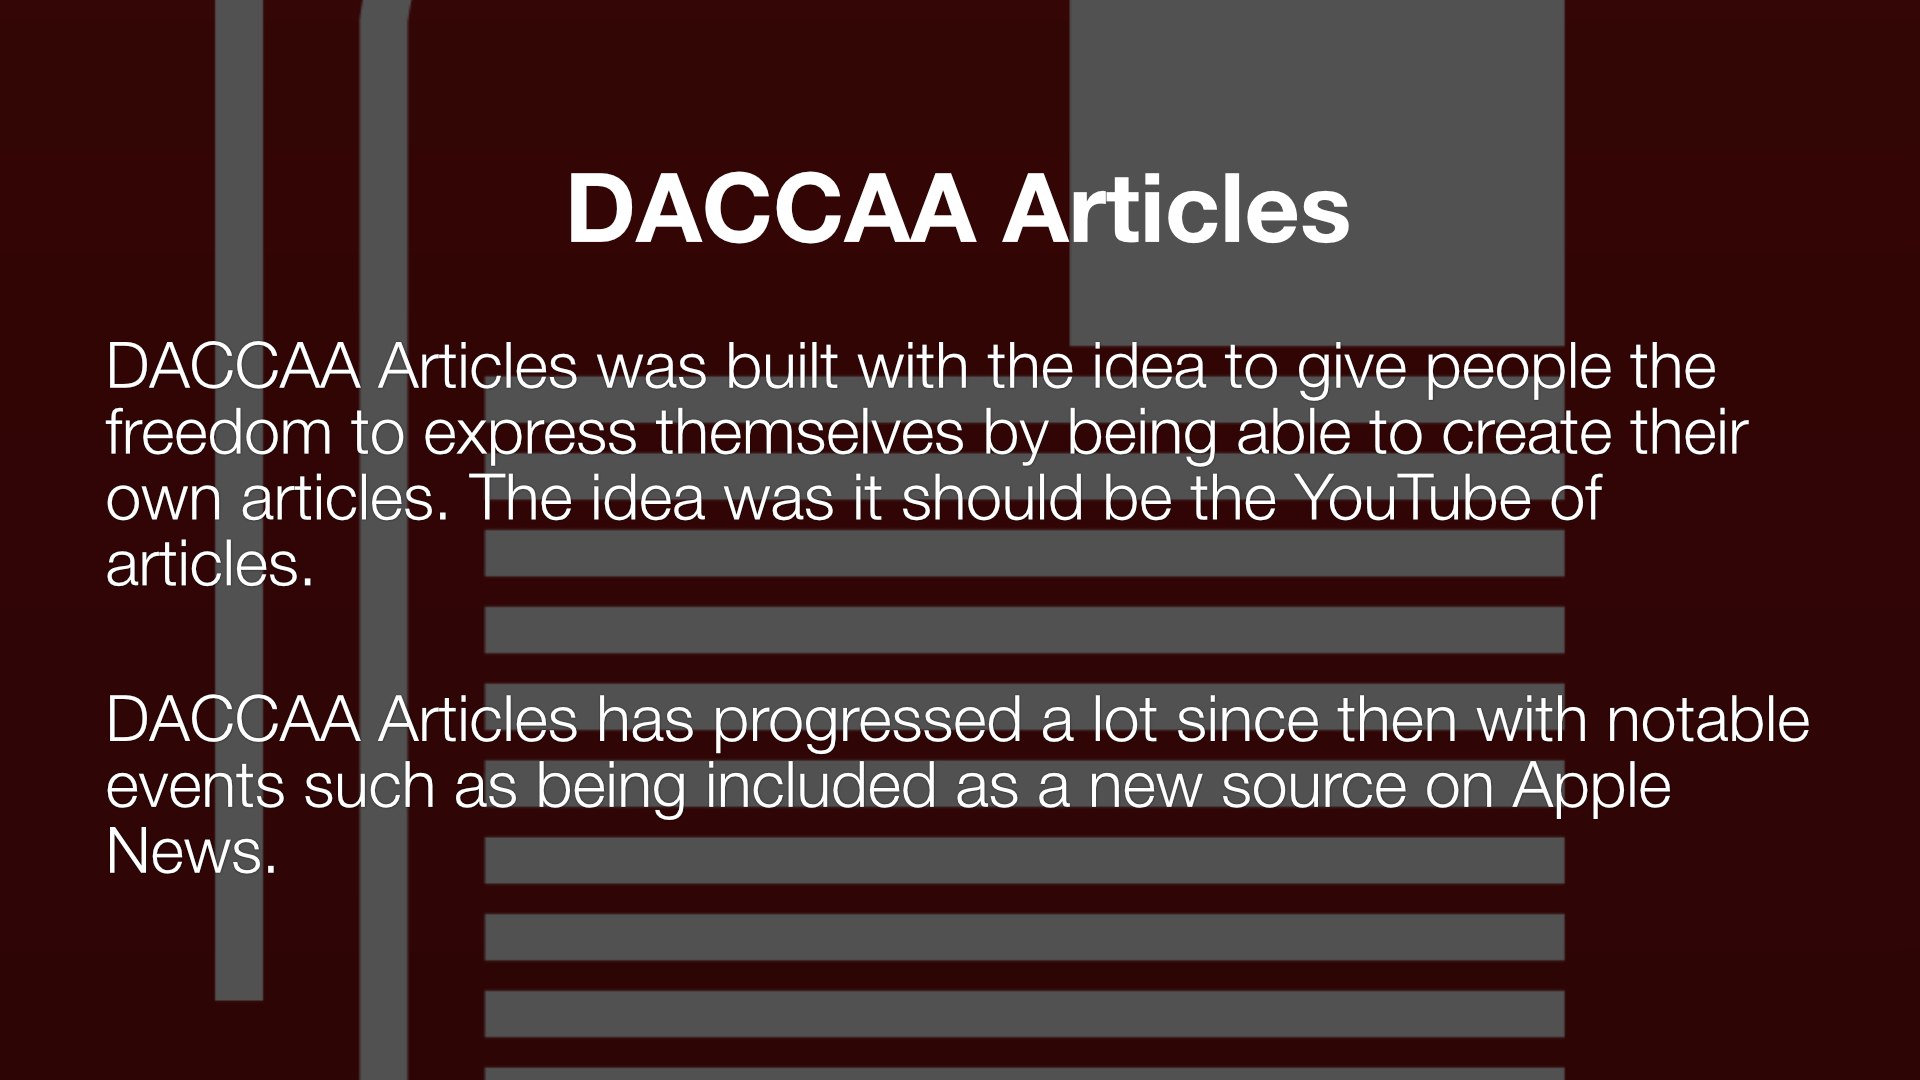 DACCAA Articles